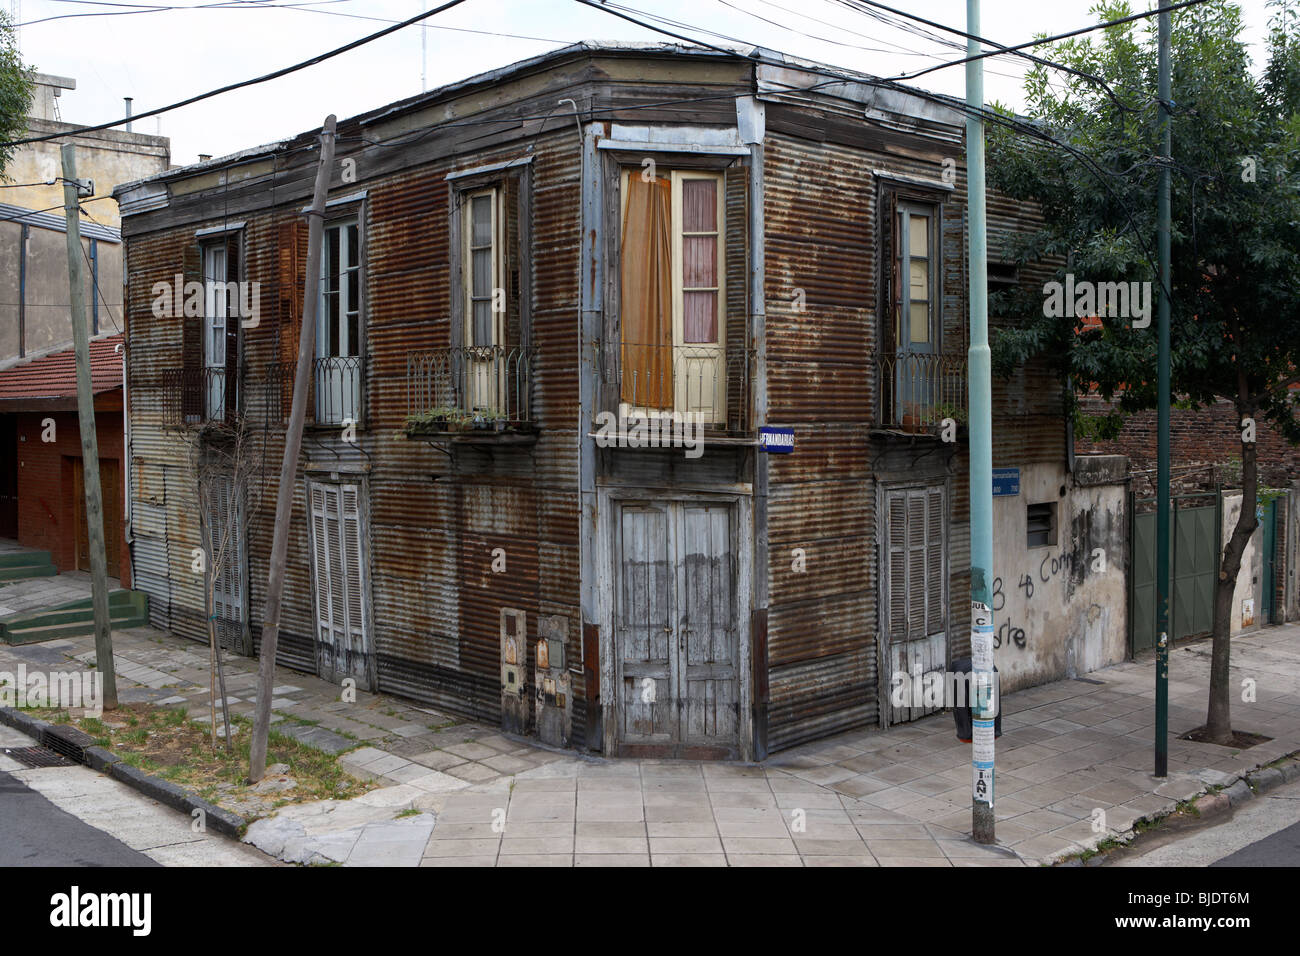 old dilapidated house made of wood and corrugated iron in la boca capital federal buenos aires republic of argentina - Stock Image